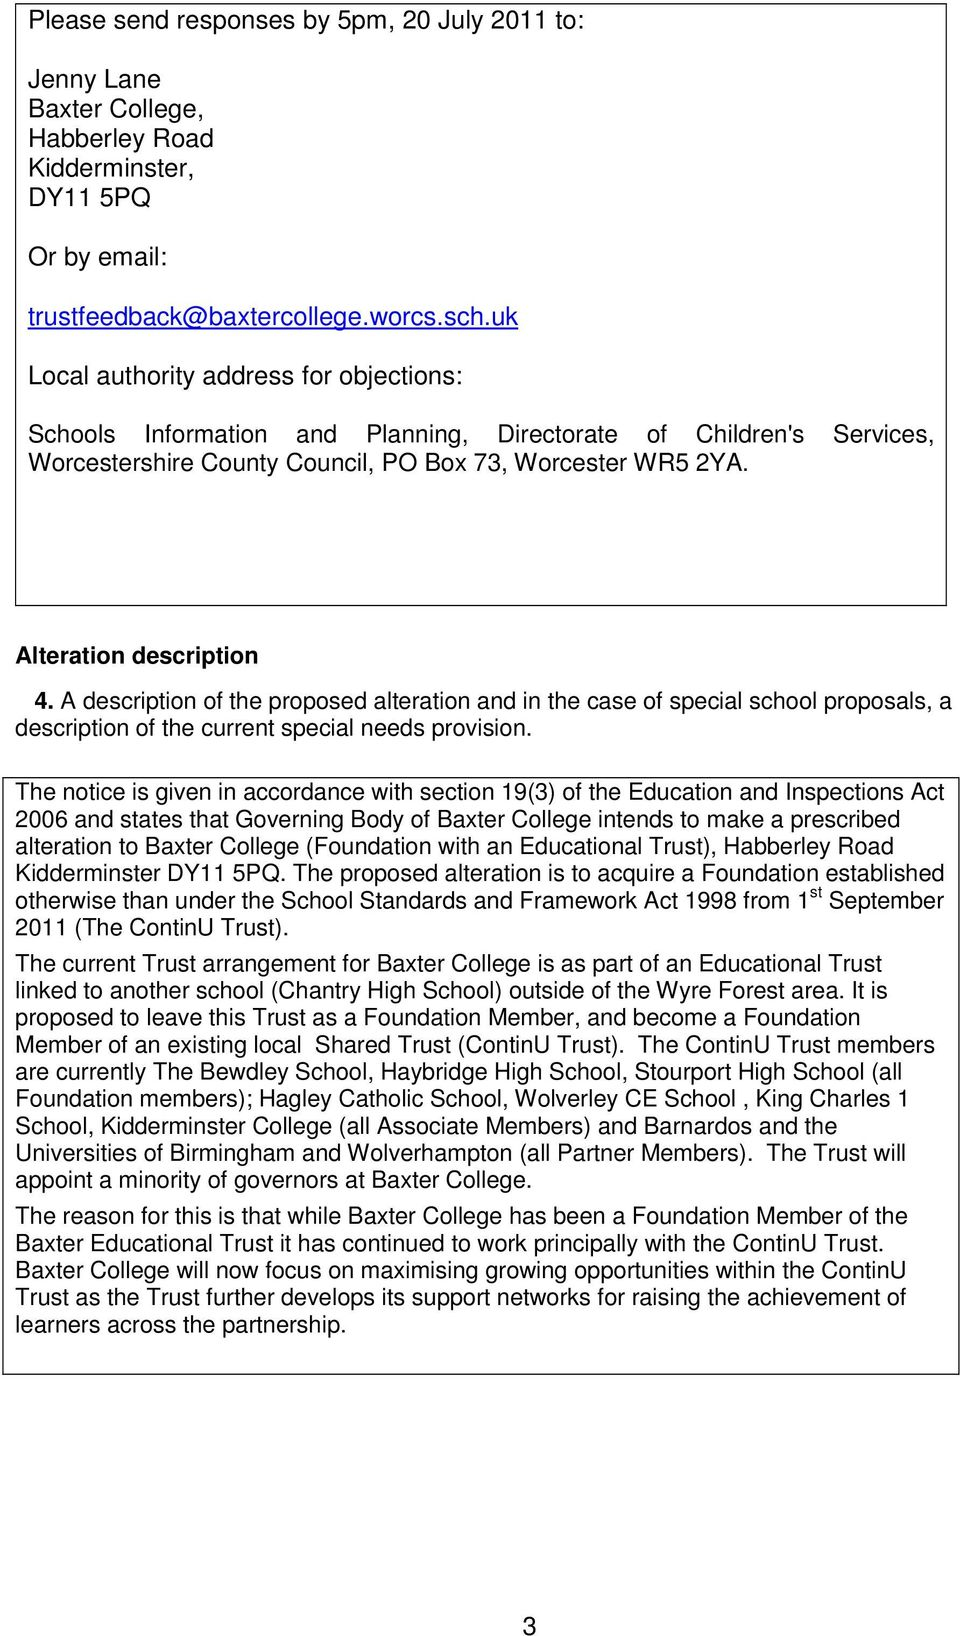 A description of the proposed alteration and in the case of special school proposals, a description of the current special needs provision.